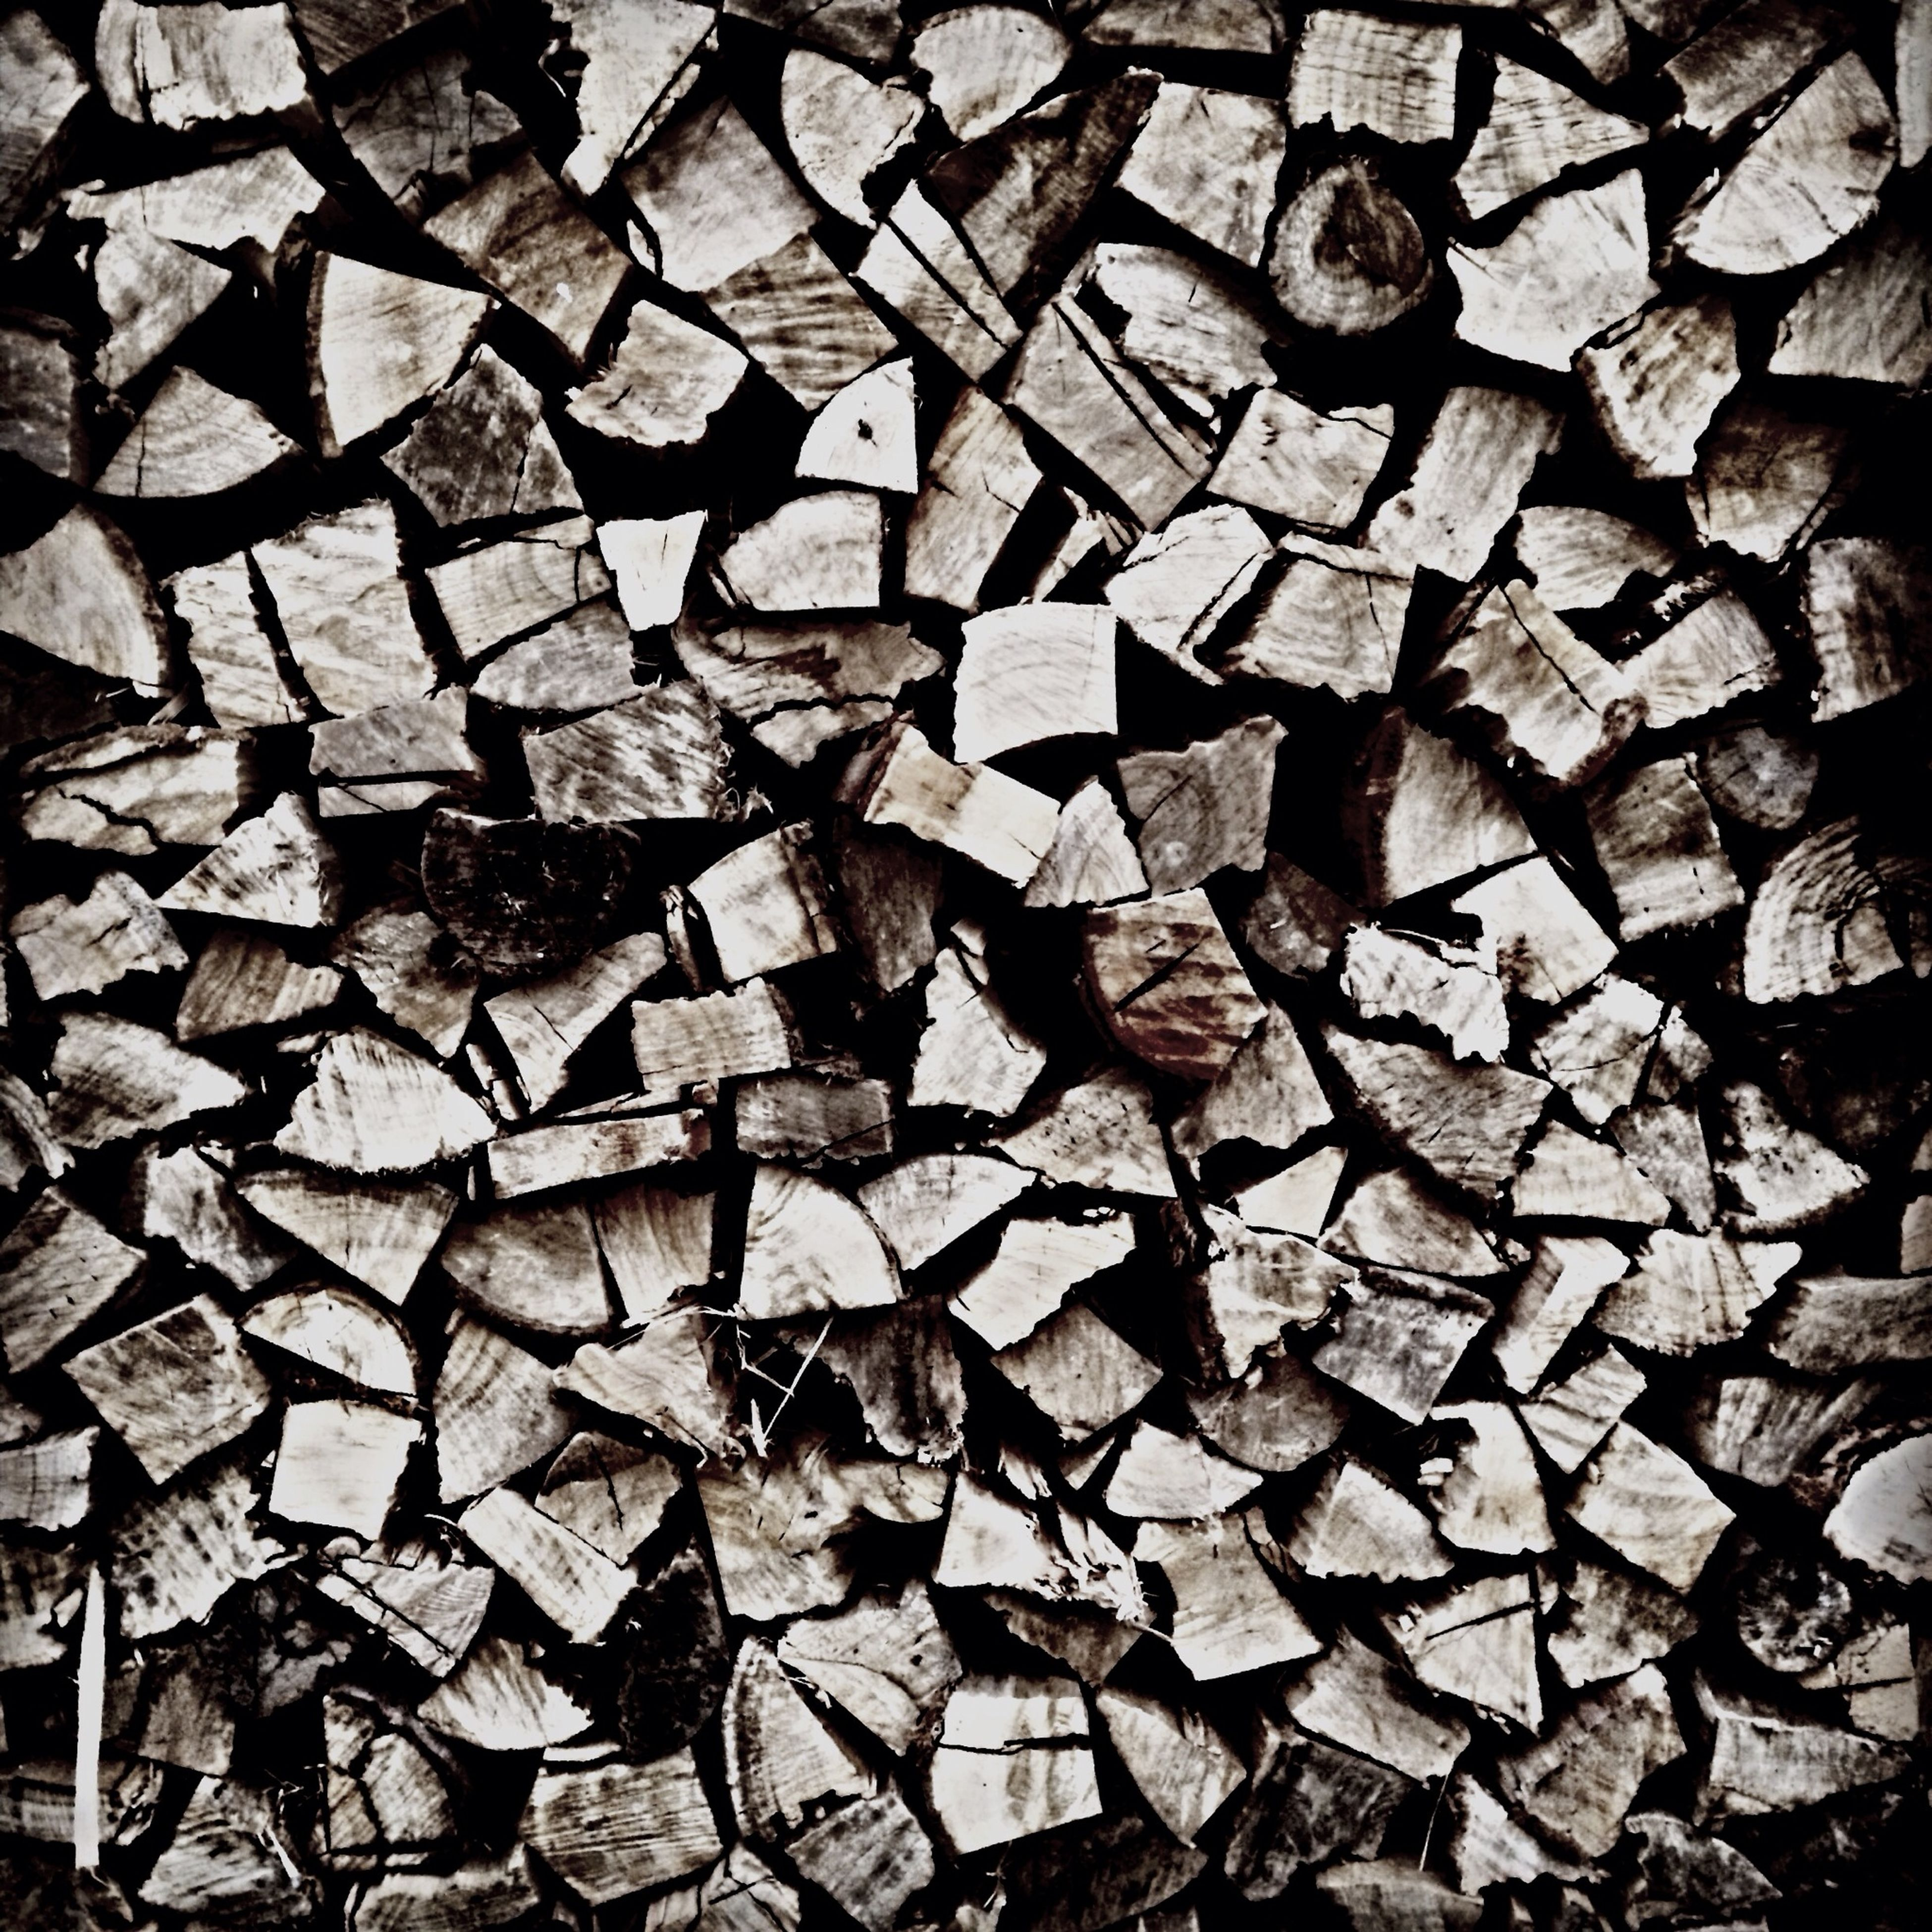 full frame, backgrounds, abundance, large group of objects, pattern, textured, firewood, high angle view, dry, stack, cobblestone, no people, lumber industry, timber, outdoors, day, shape, repetition, deforestation, environmental issues